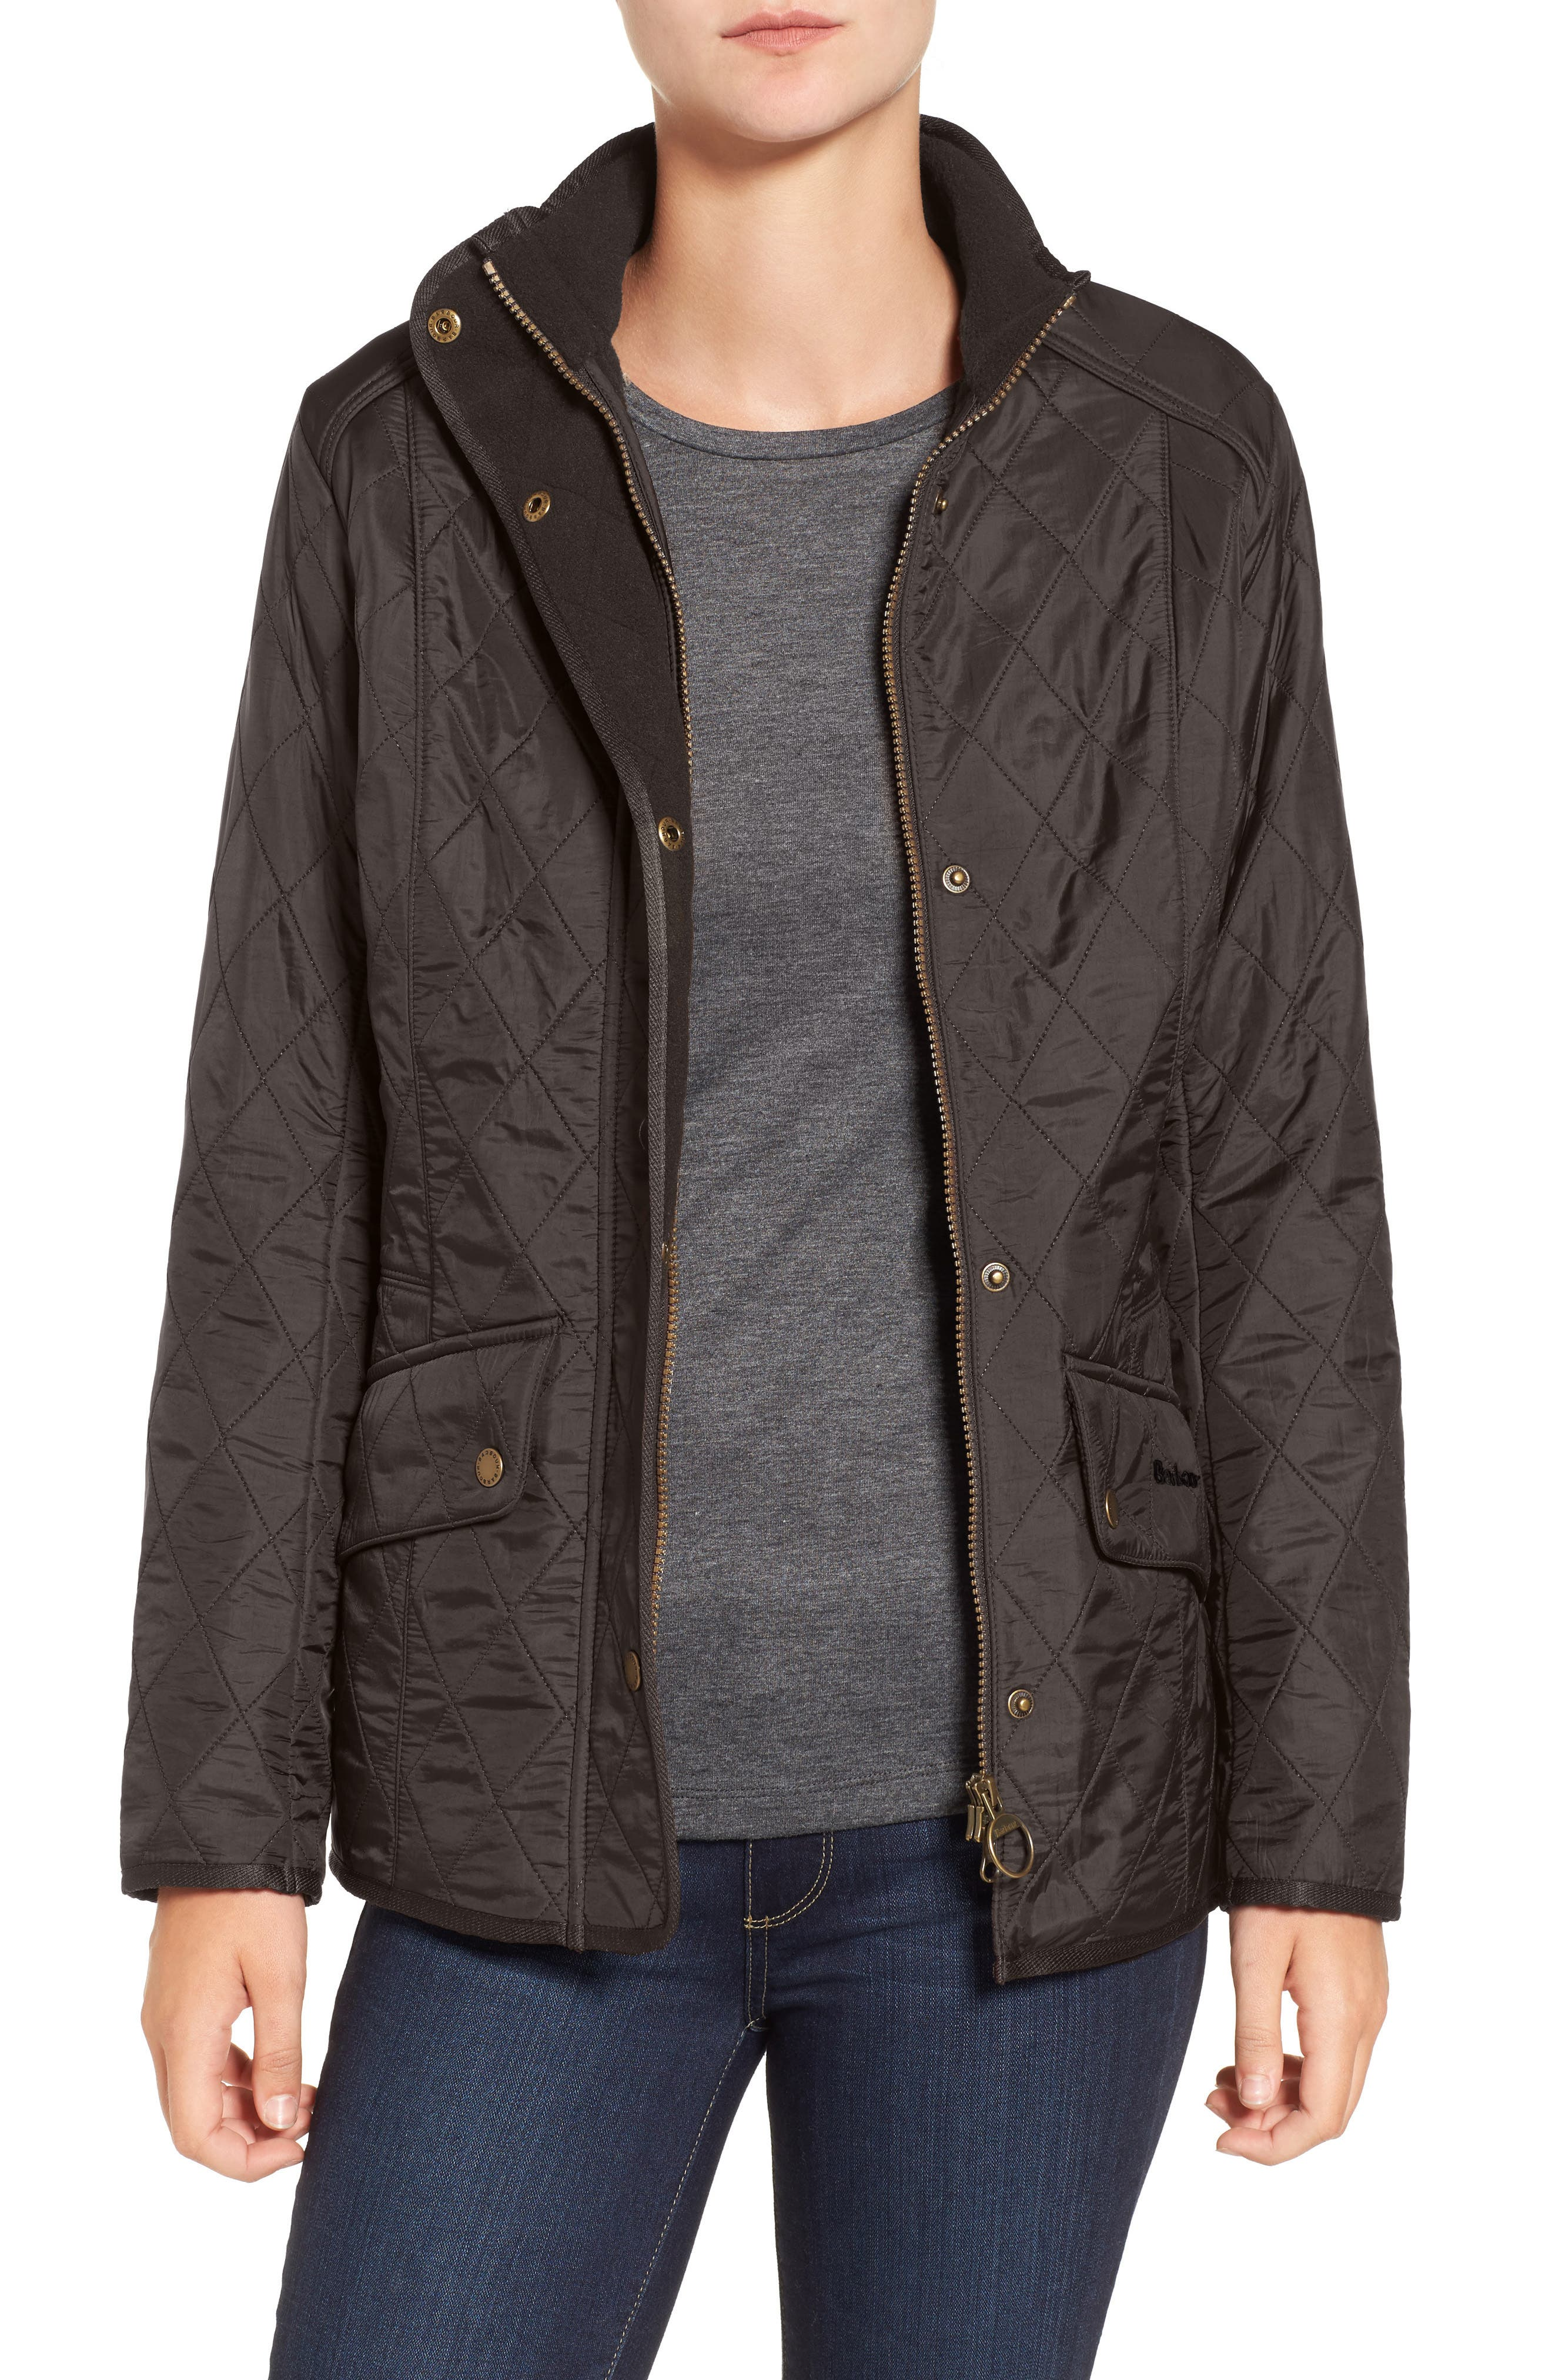 Alternate Image 1 Selected - Barbour 'Cavalry' Quilted Jacket